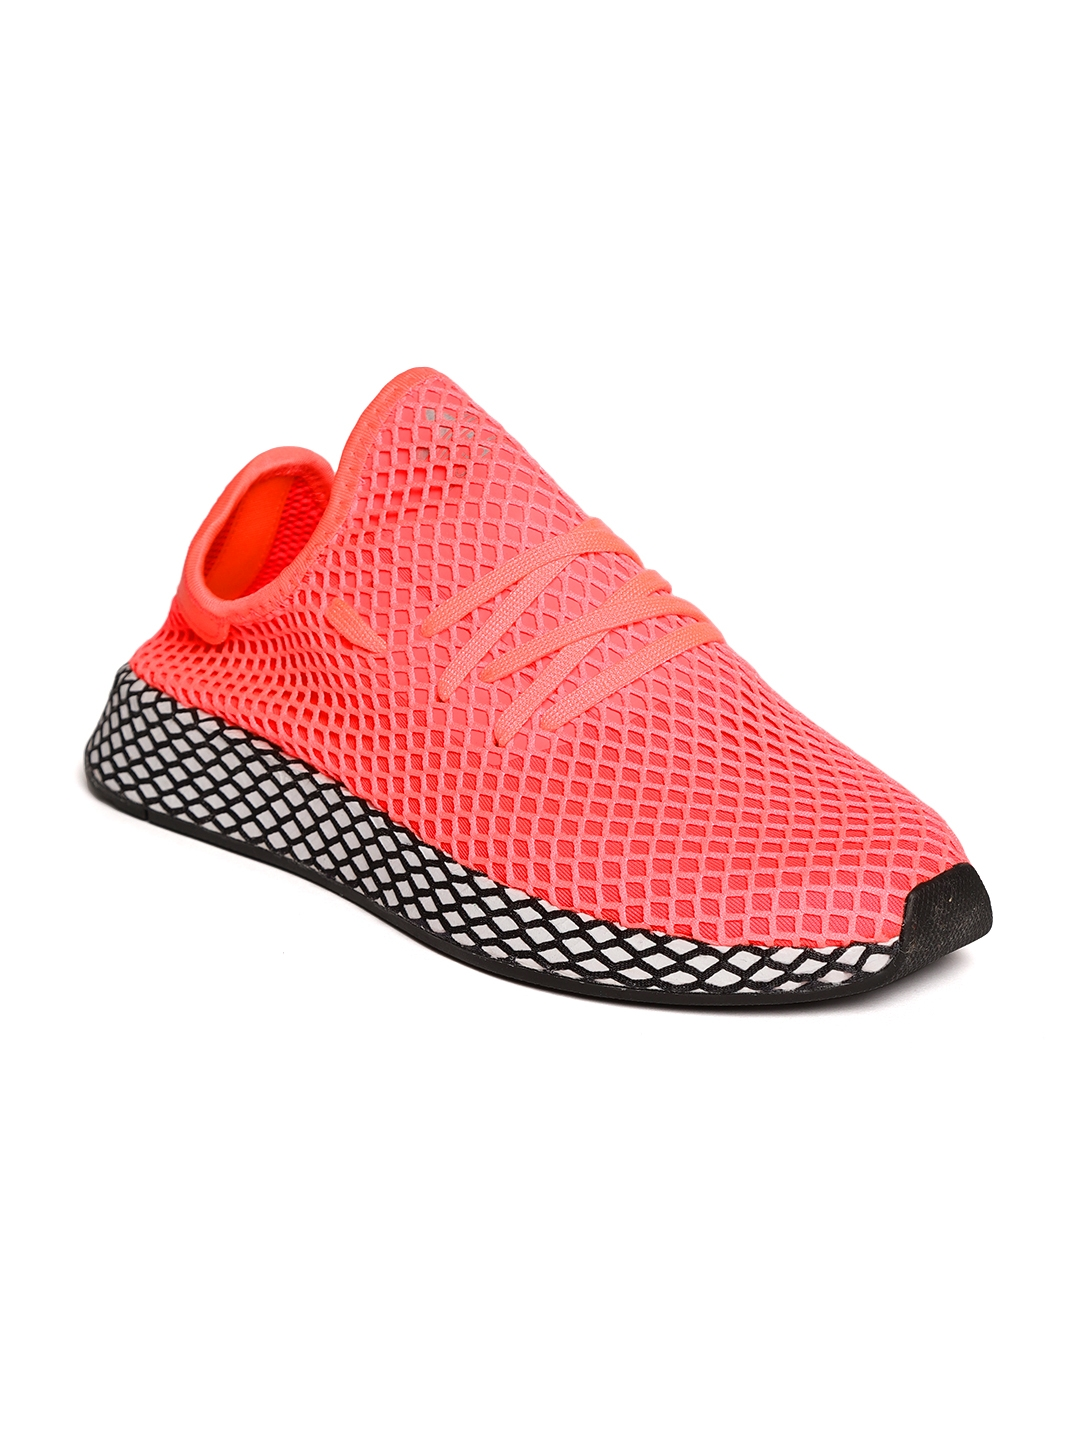 online retailer a8650 9cadf ADIDAS Originals Men Neon Pink DEERUPT Running Shoes